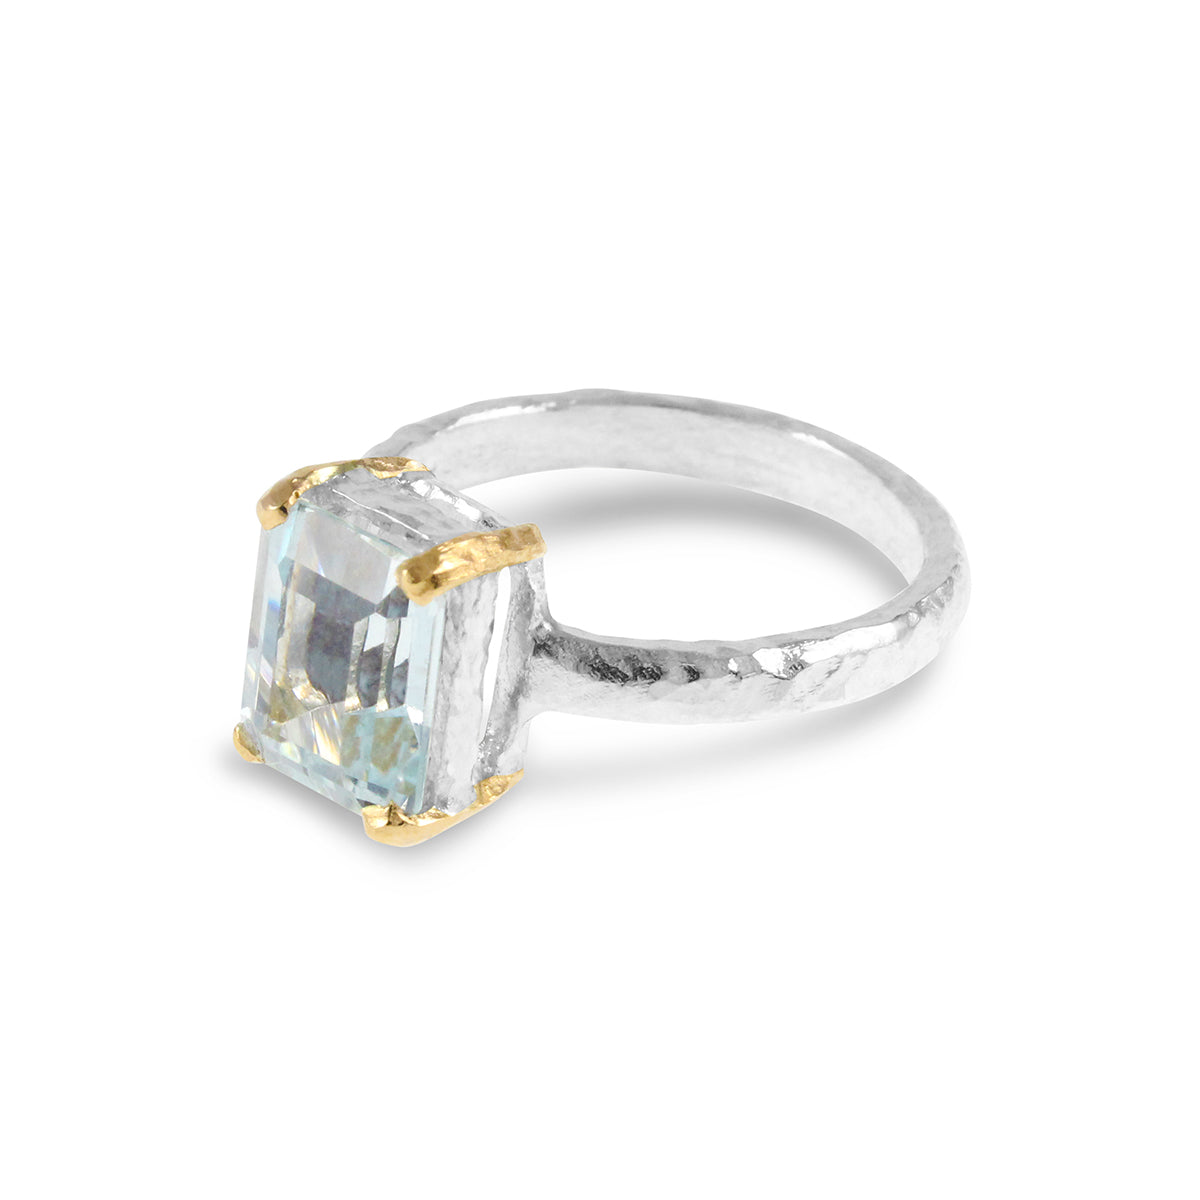 Ring in silver with 18ct yellow gold claws and set with an aquamarine